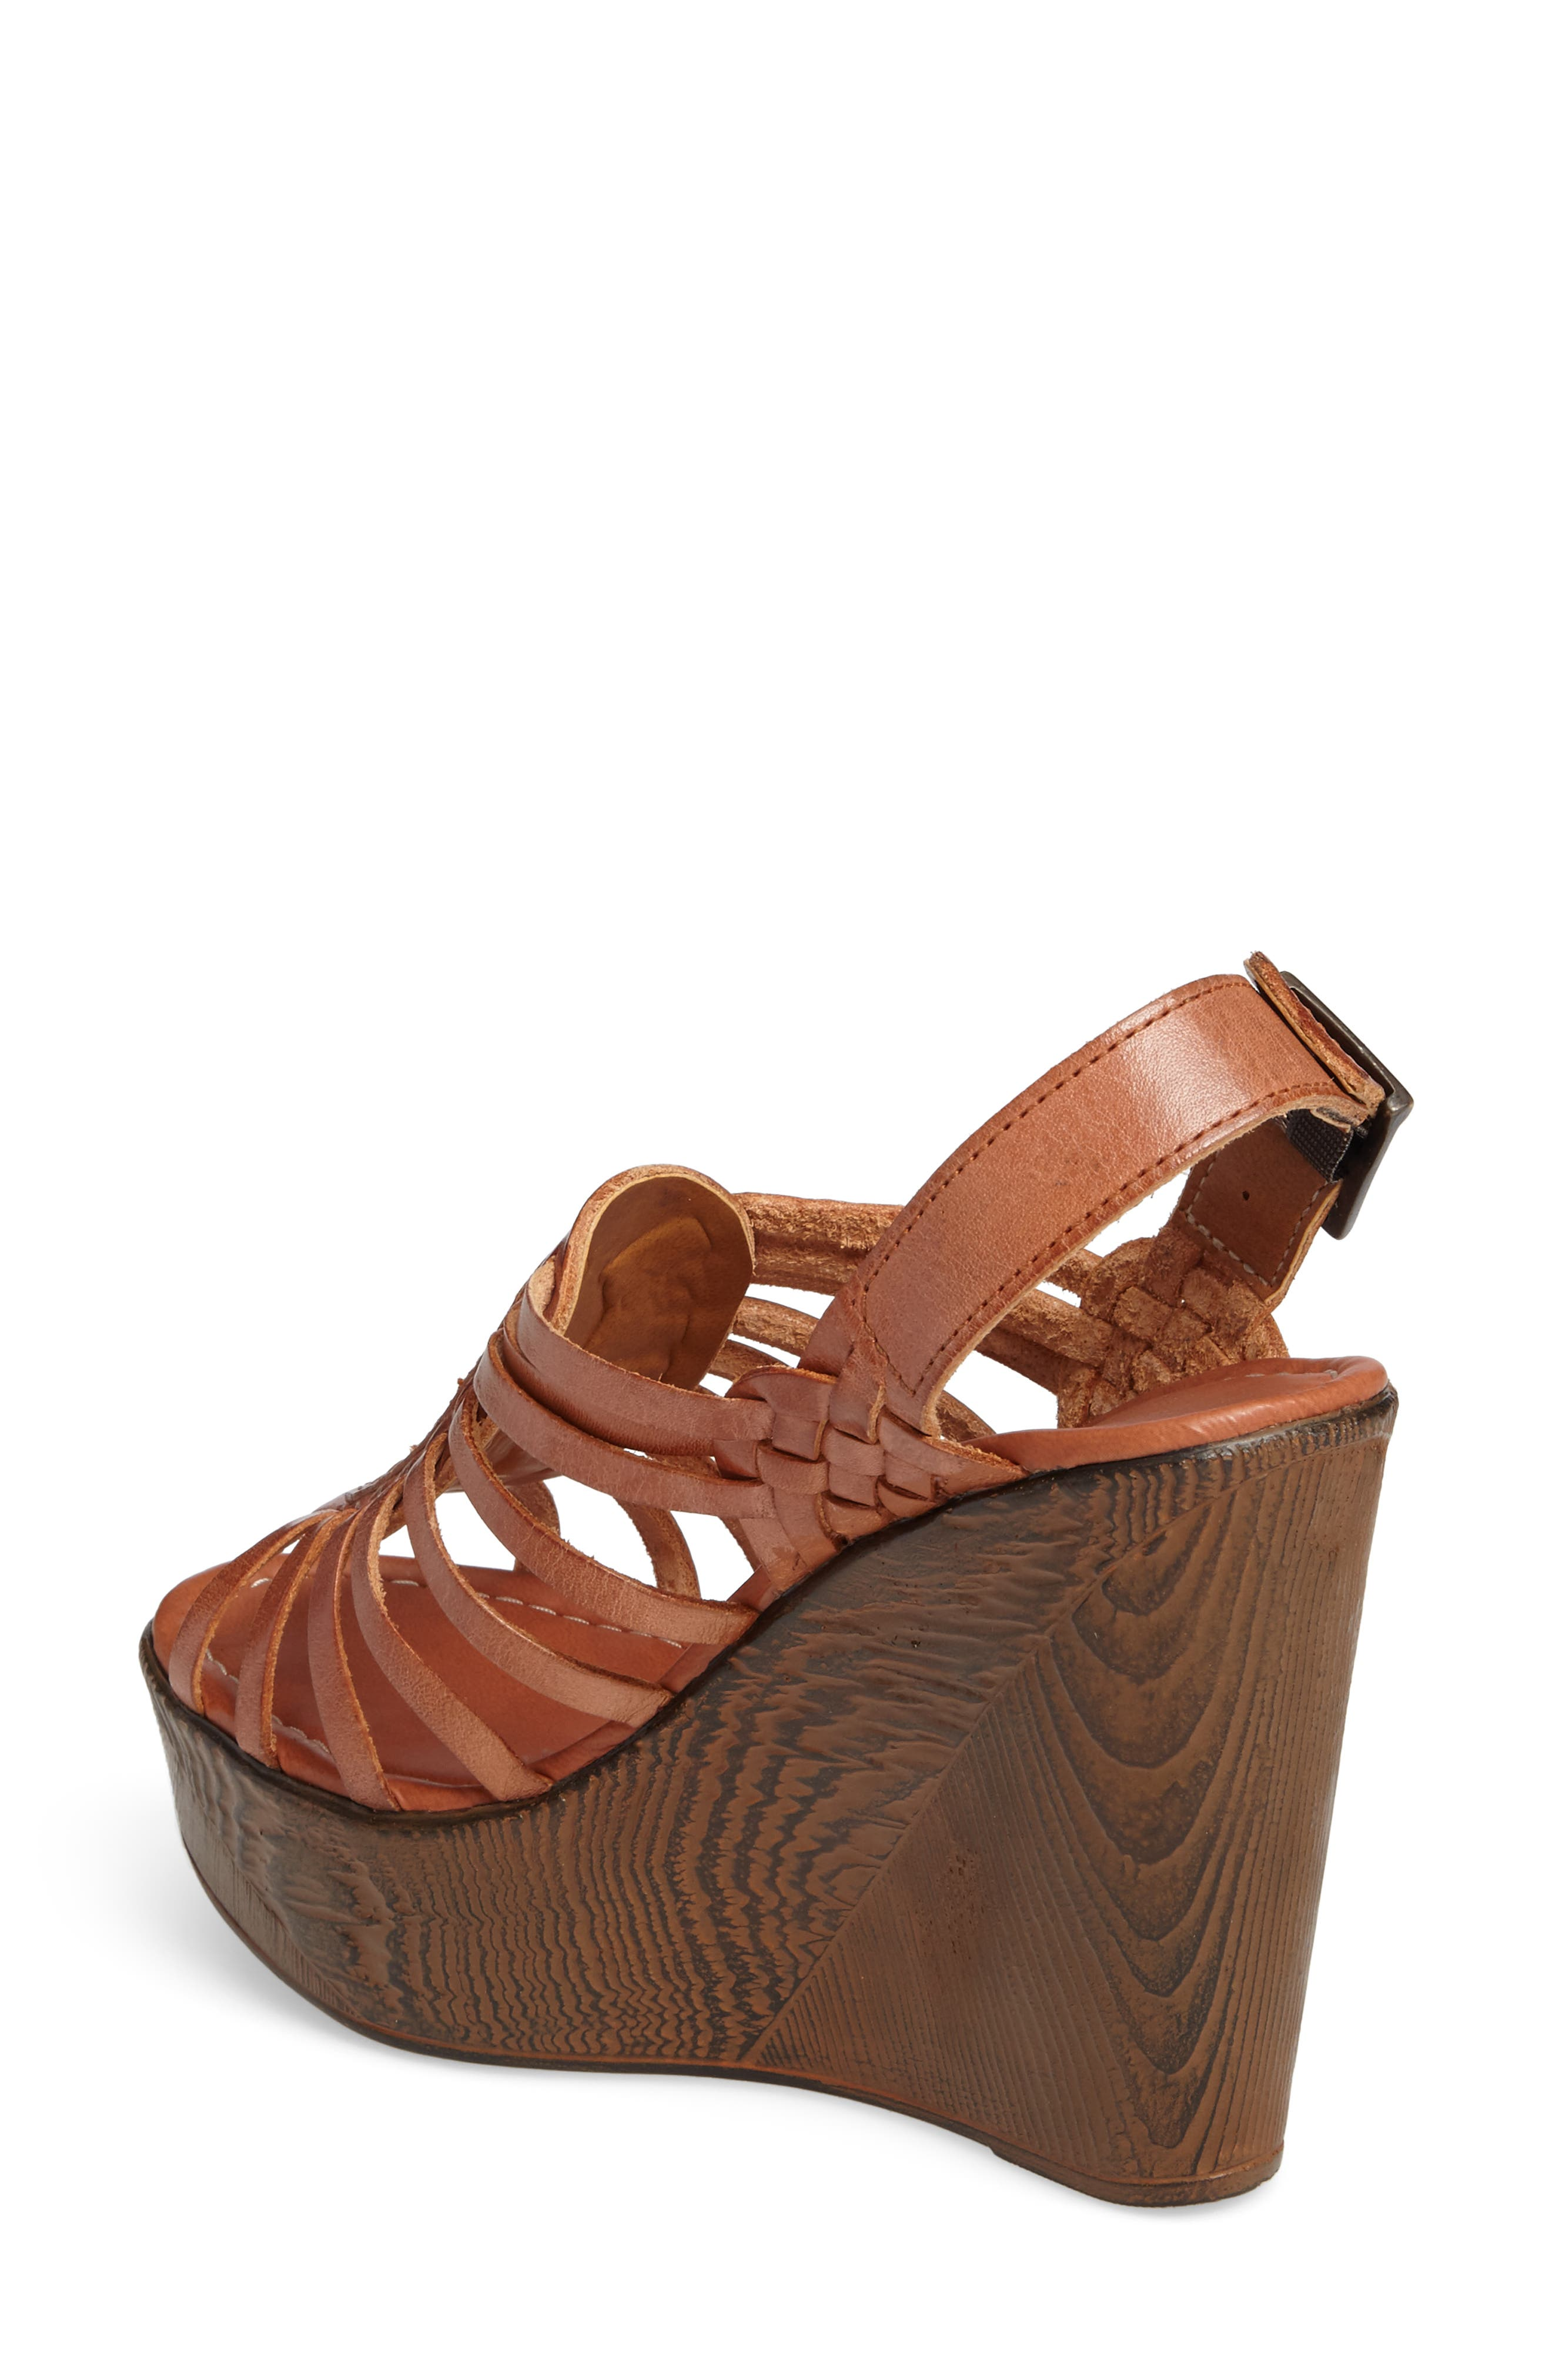 Prolific Wedge Sandal,                             Alternate thumbnail 2, color,                             Tan Leather